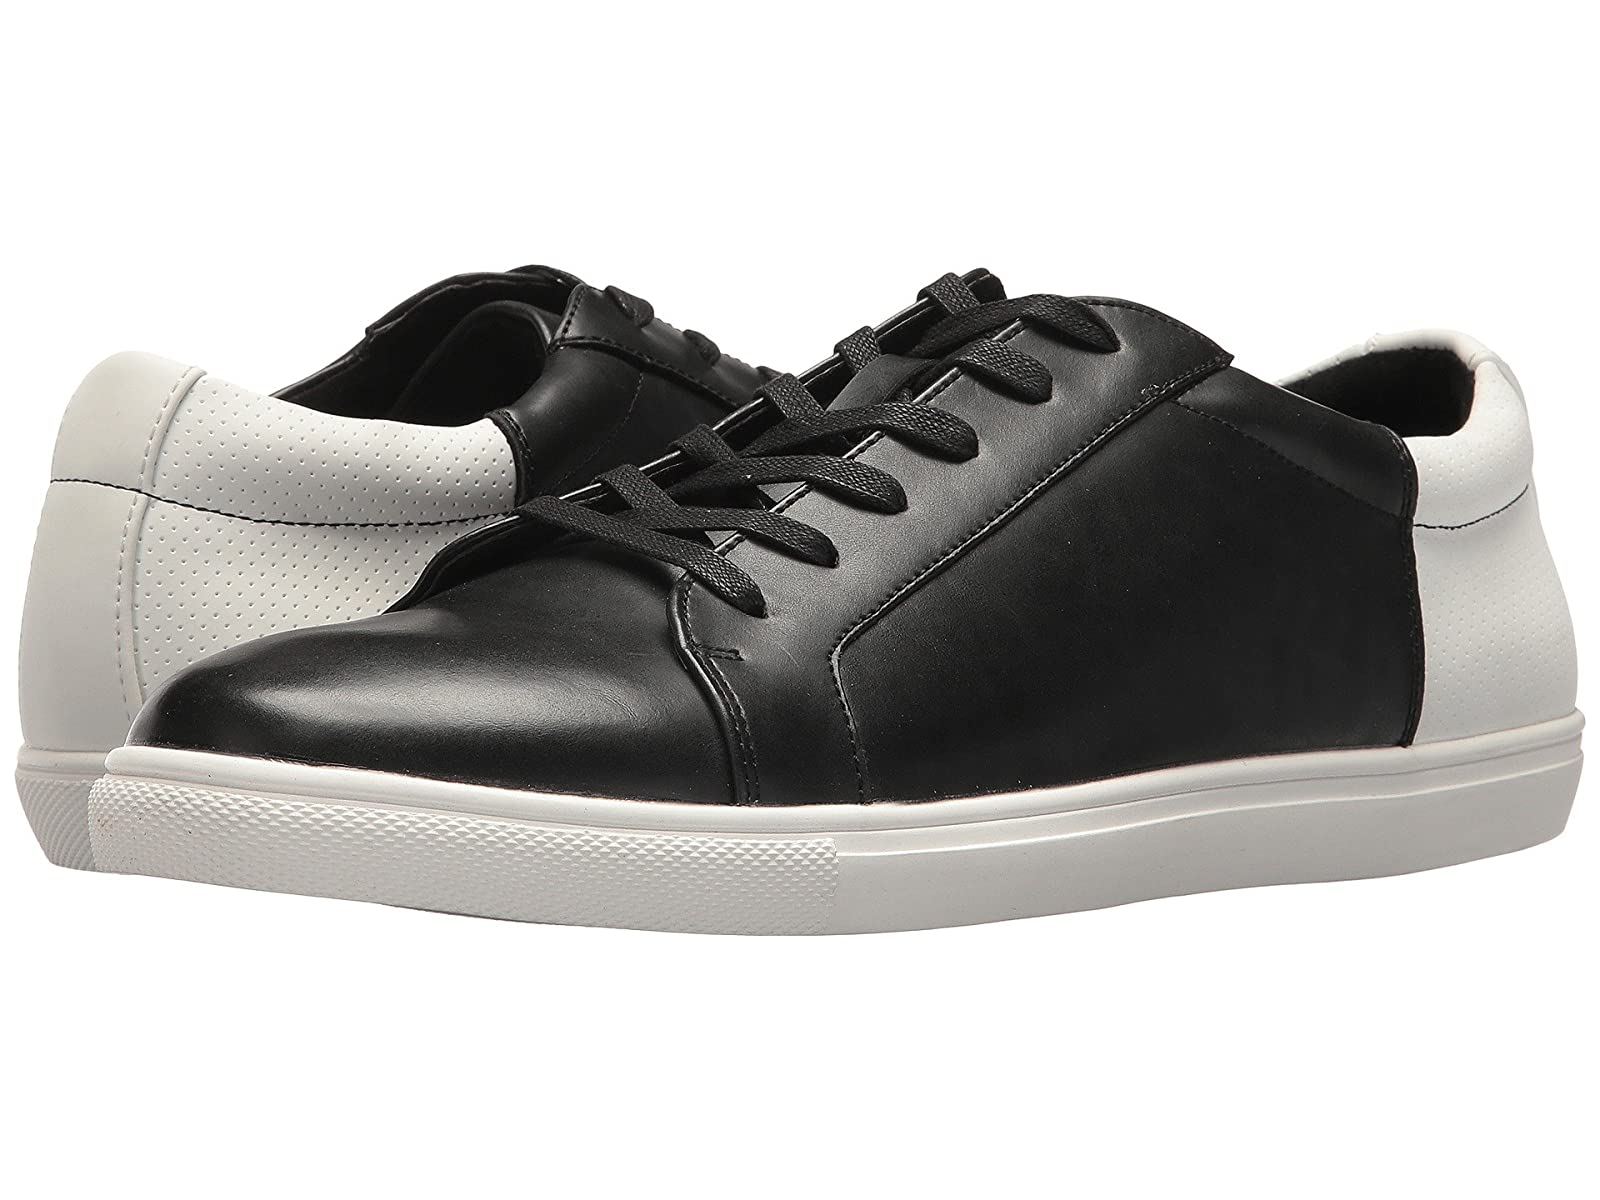 Kenneth Cole Unlisted Stand Sneaker BCheap and distinctive eye-catching shoes